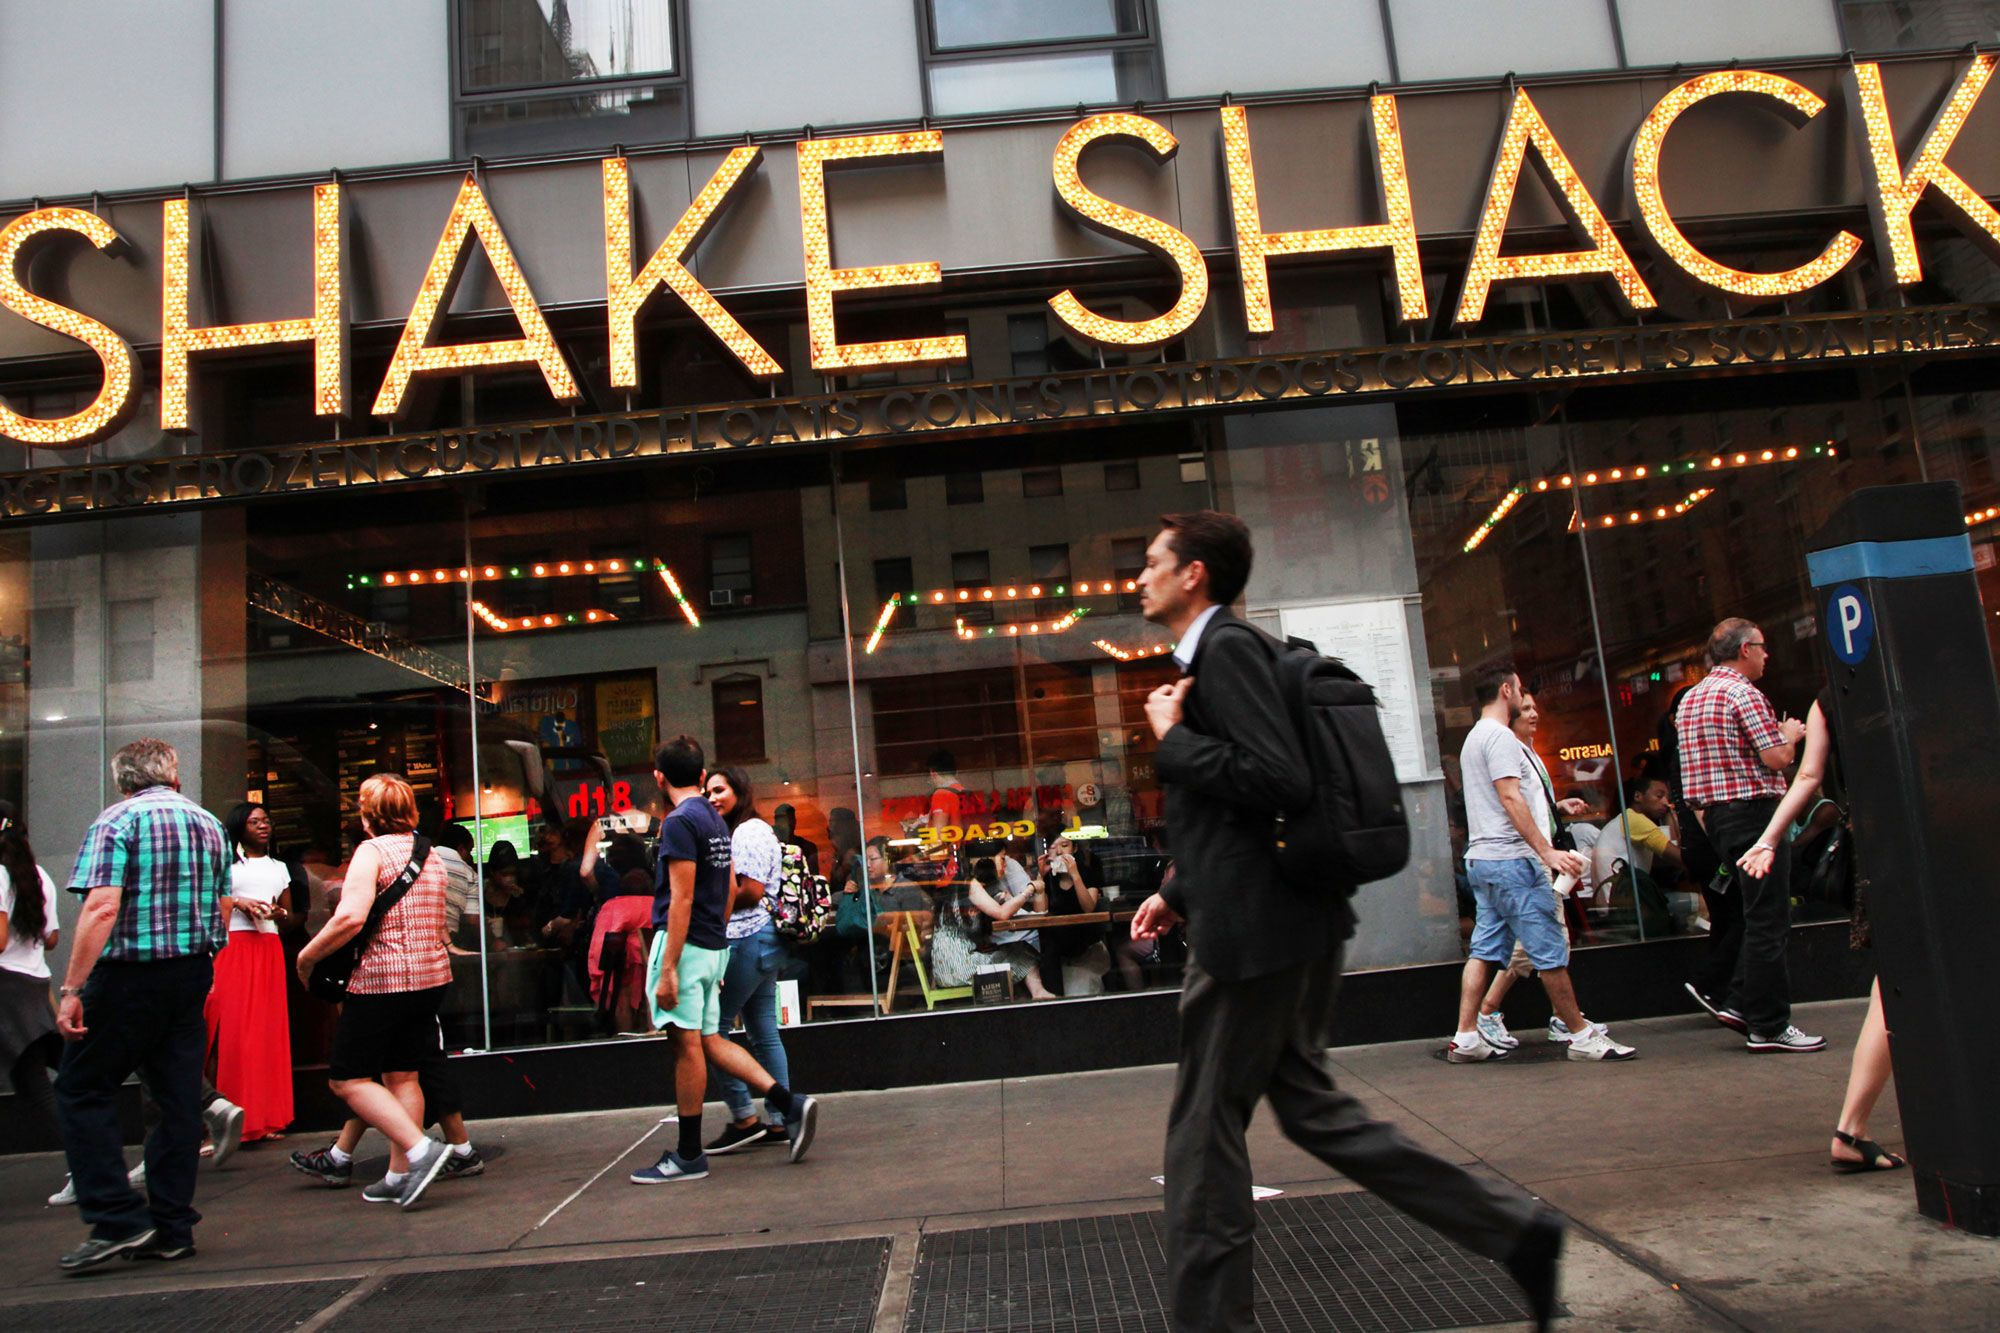 Stocks making the biggest moves after hours: Shake Shack, CBS, Expedia